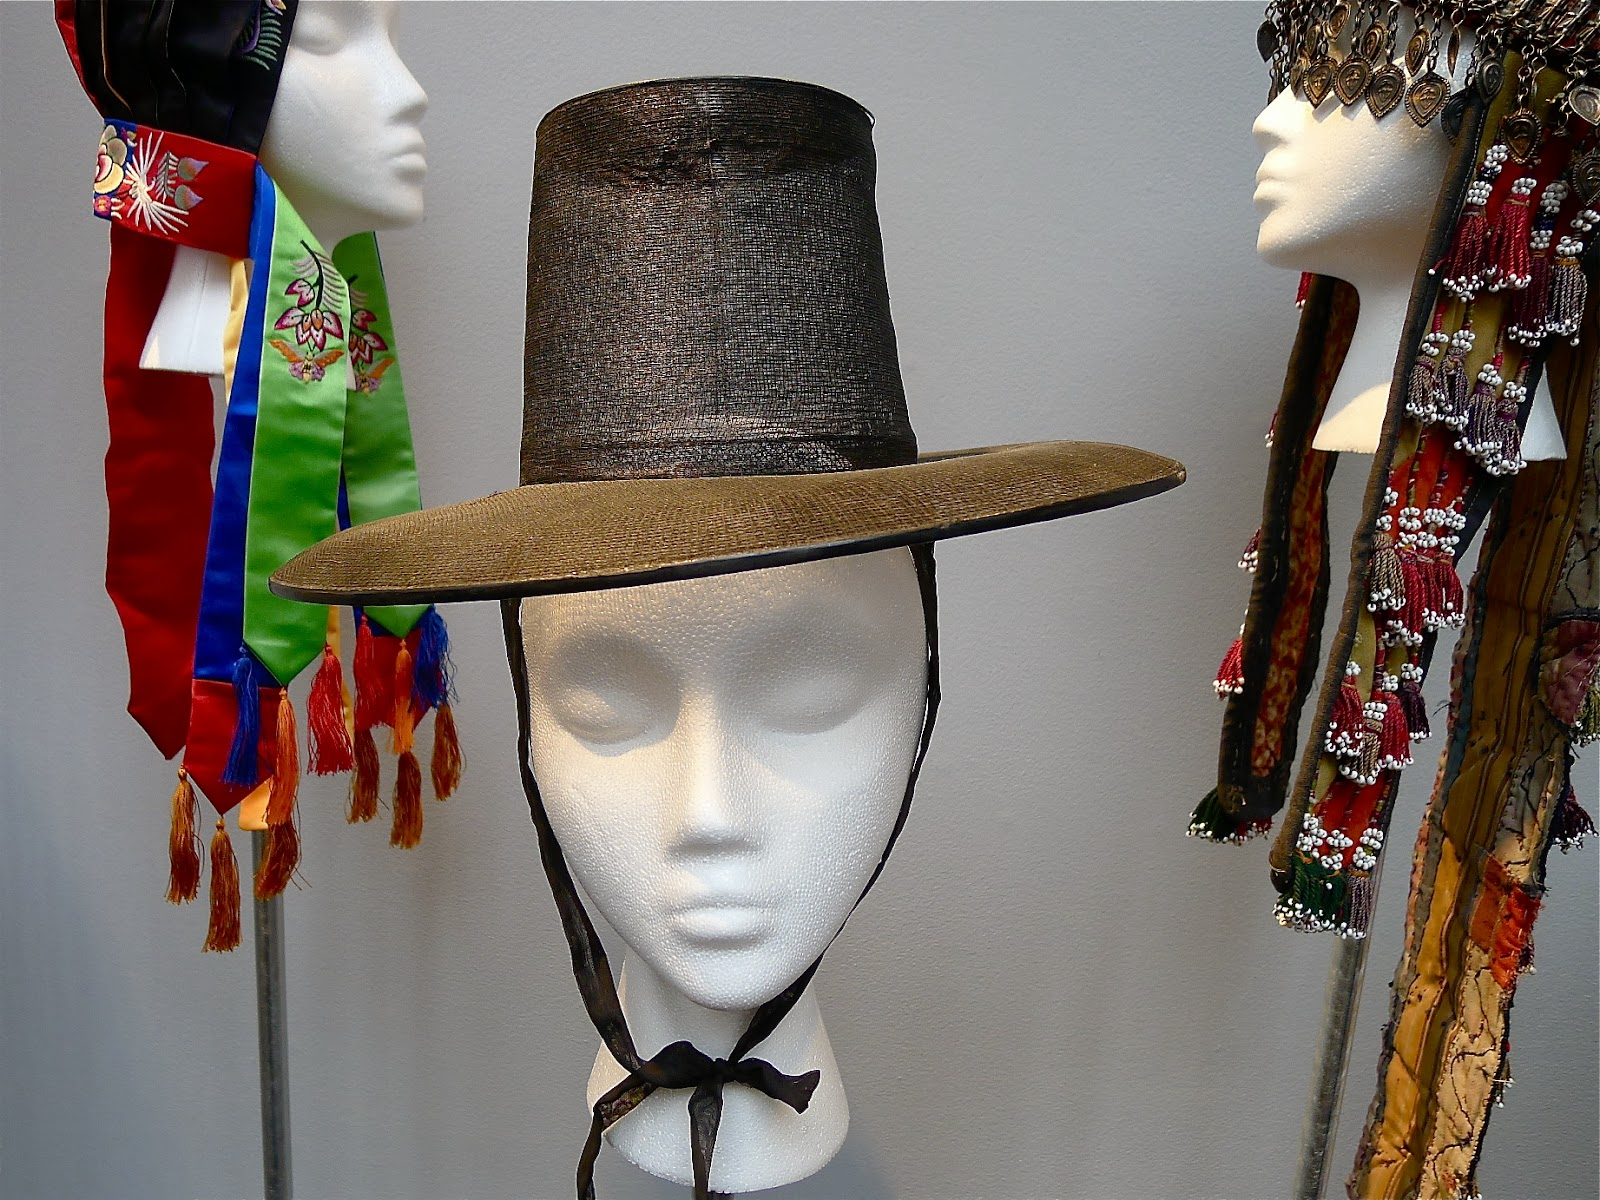 0659fe5a0db HATtitude   The Milliner in Culture and Couture Exhibition ...